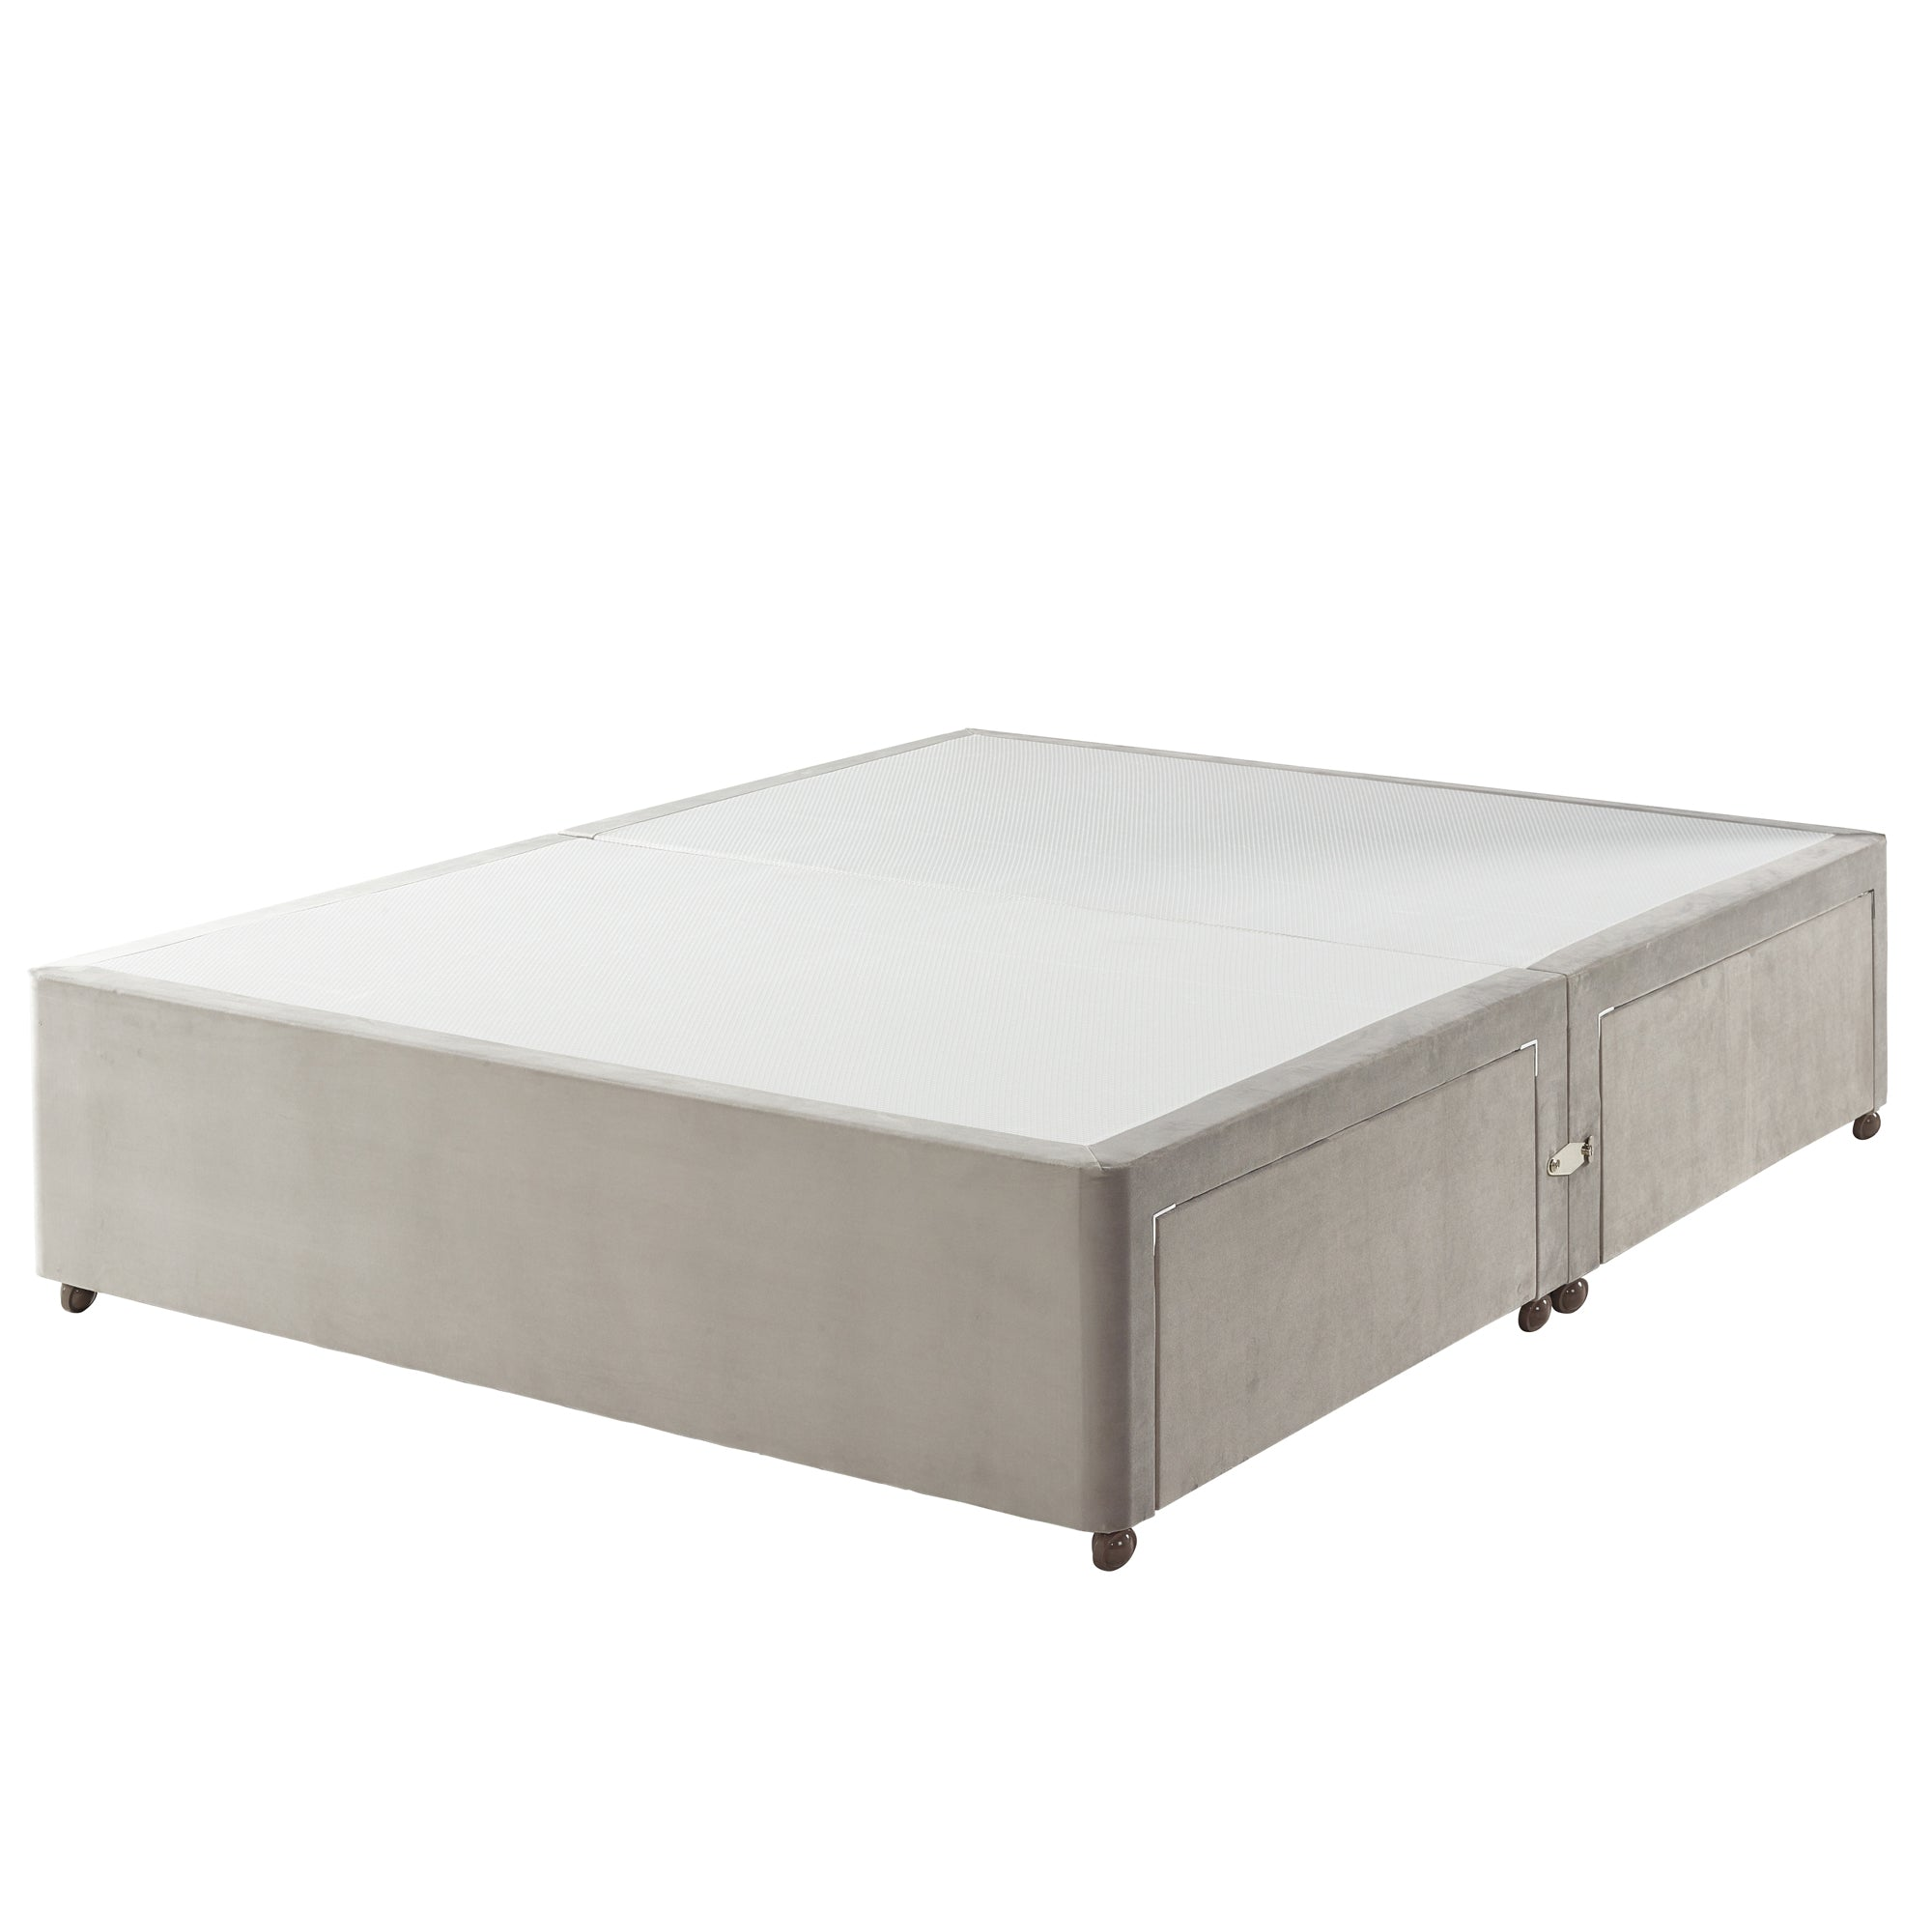 4 Drawer Divan Base (closed)